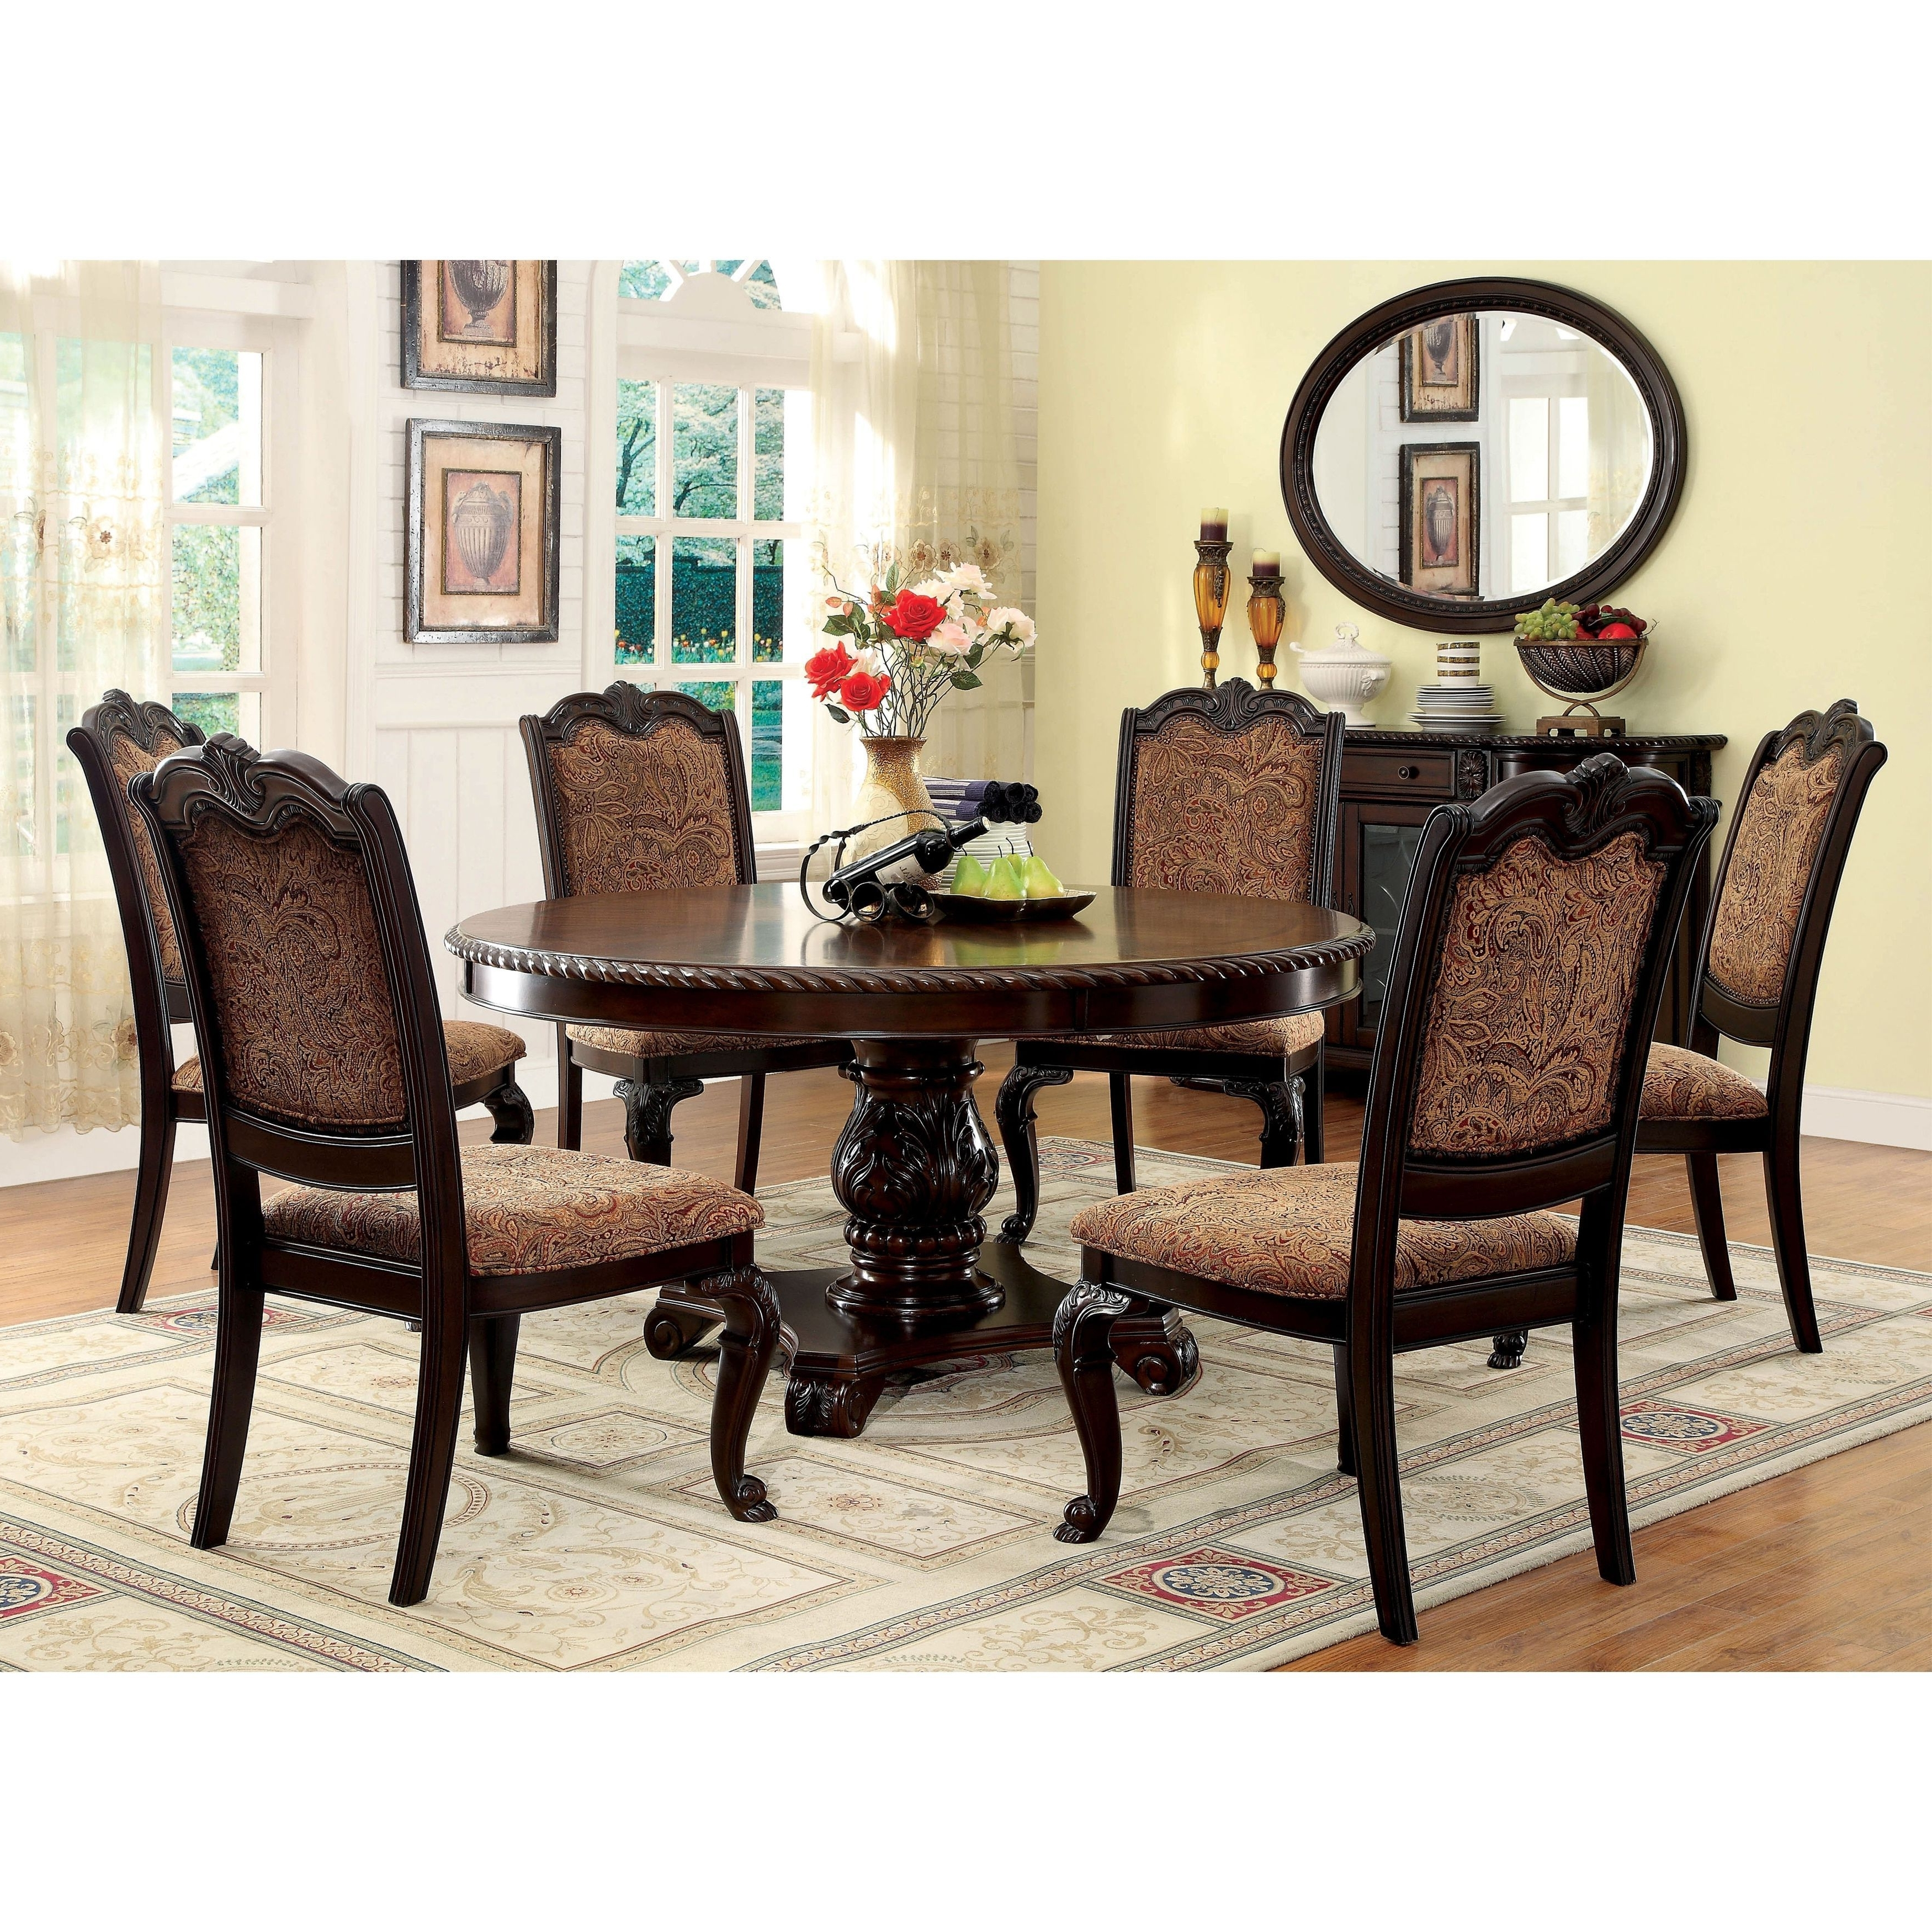 Preferred Norwood 7 Piece Rectangular Extension Dining Sets With Bench & Uph Side Chairs With Furniture Of America Oskarre Iii Brown Cherry (Red) 7 Piece Formal (View 9 of 25)